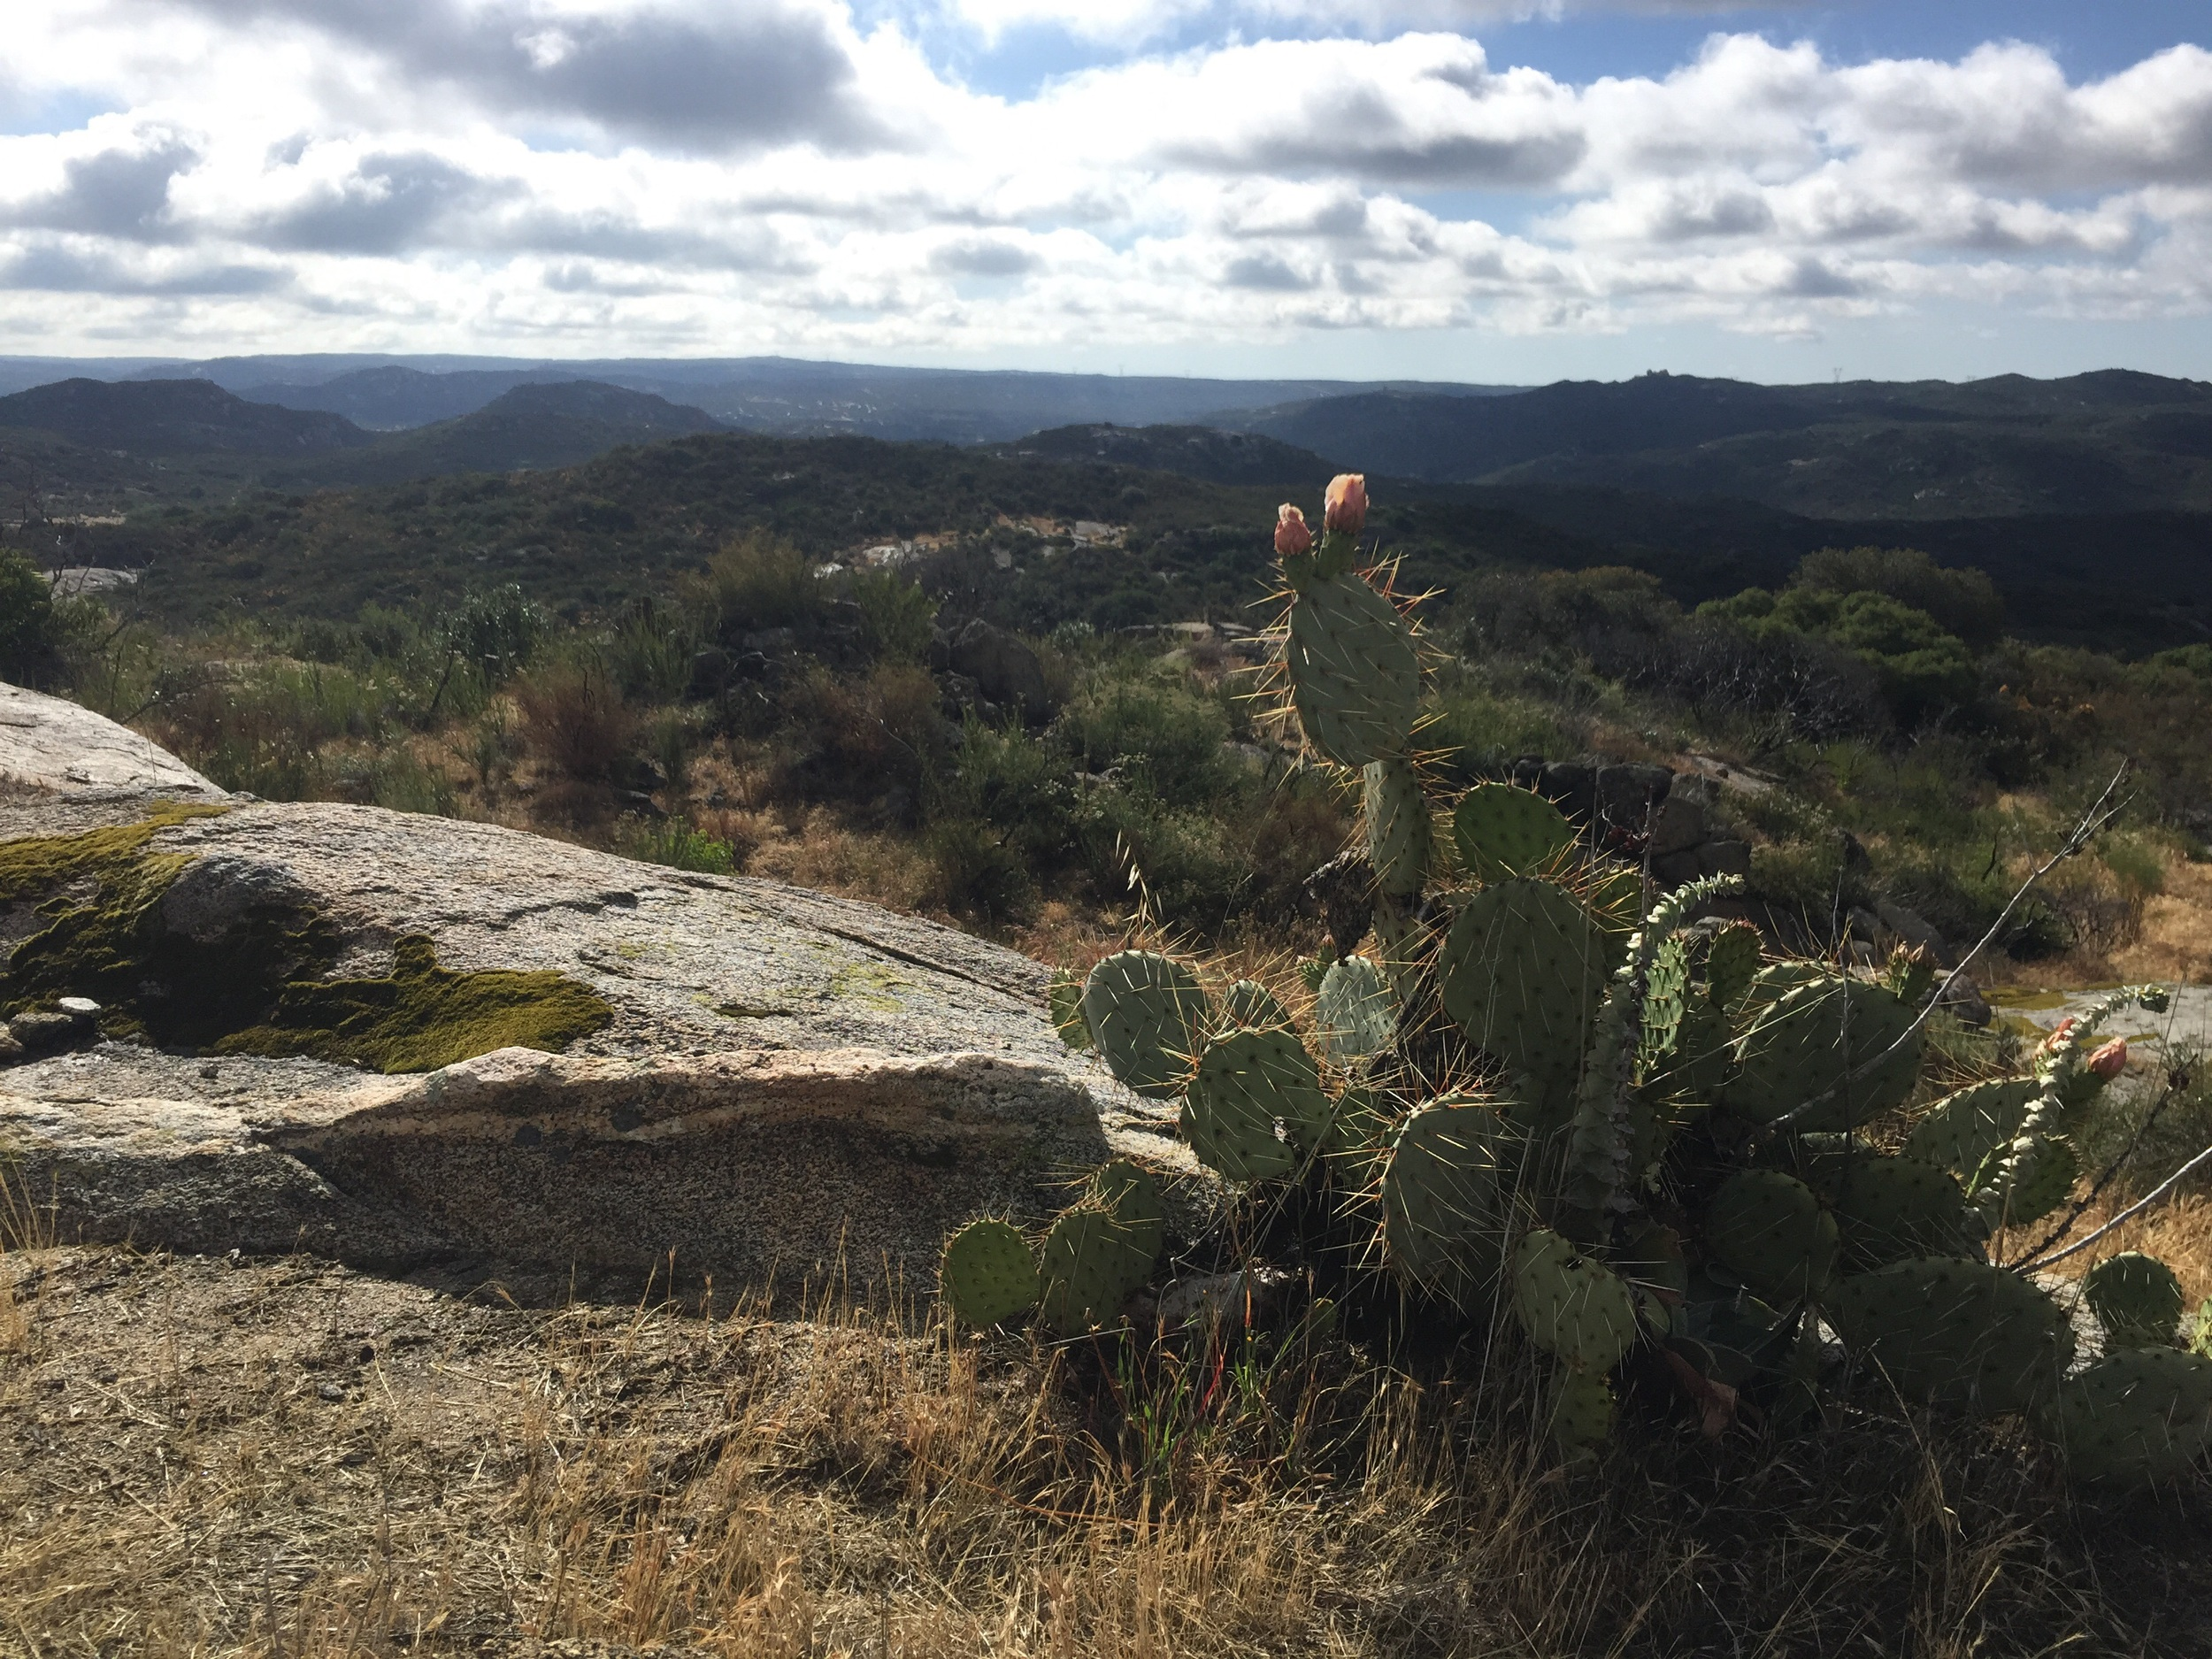 Hiking in a dry climate can be beautiful and difficult!